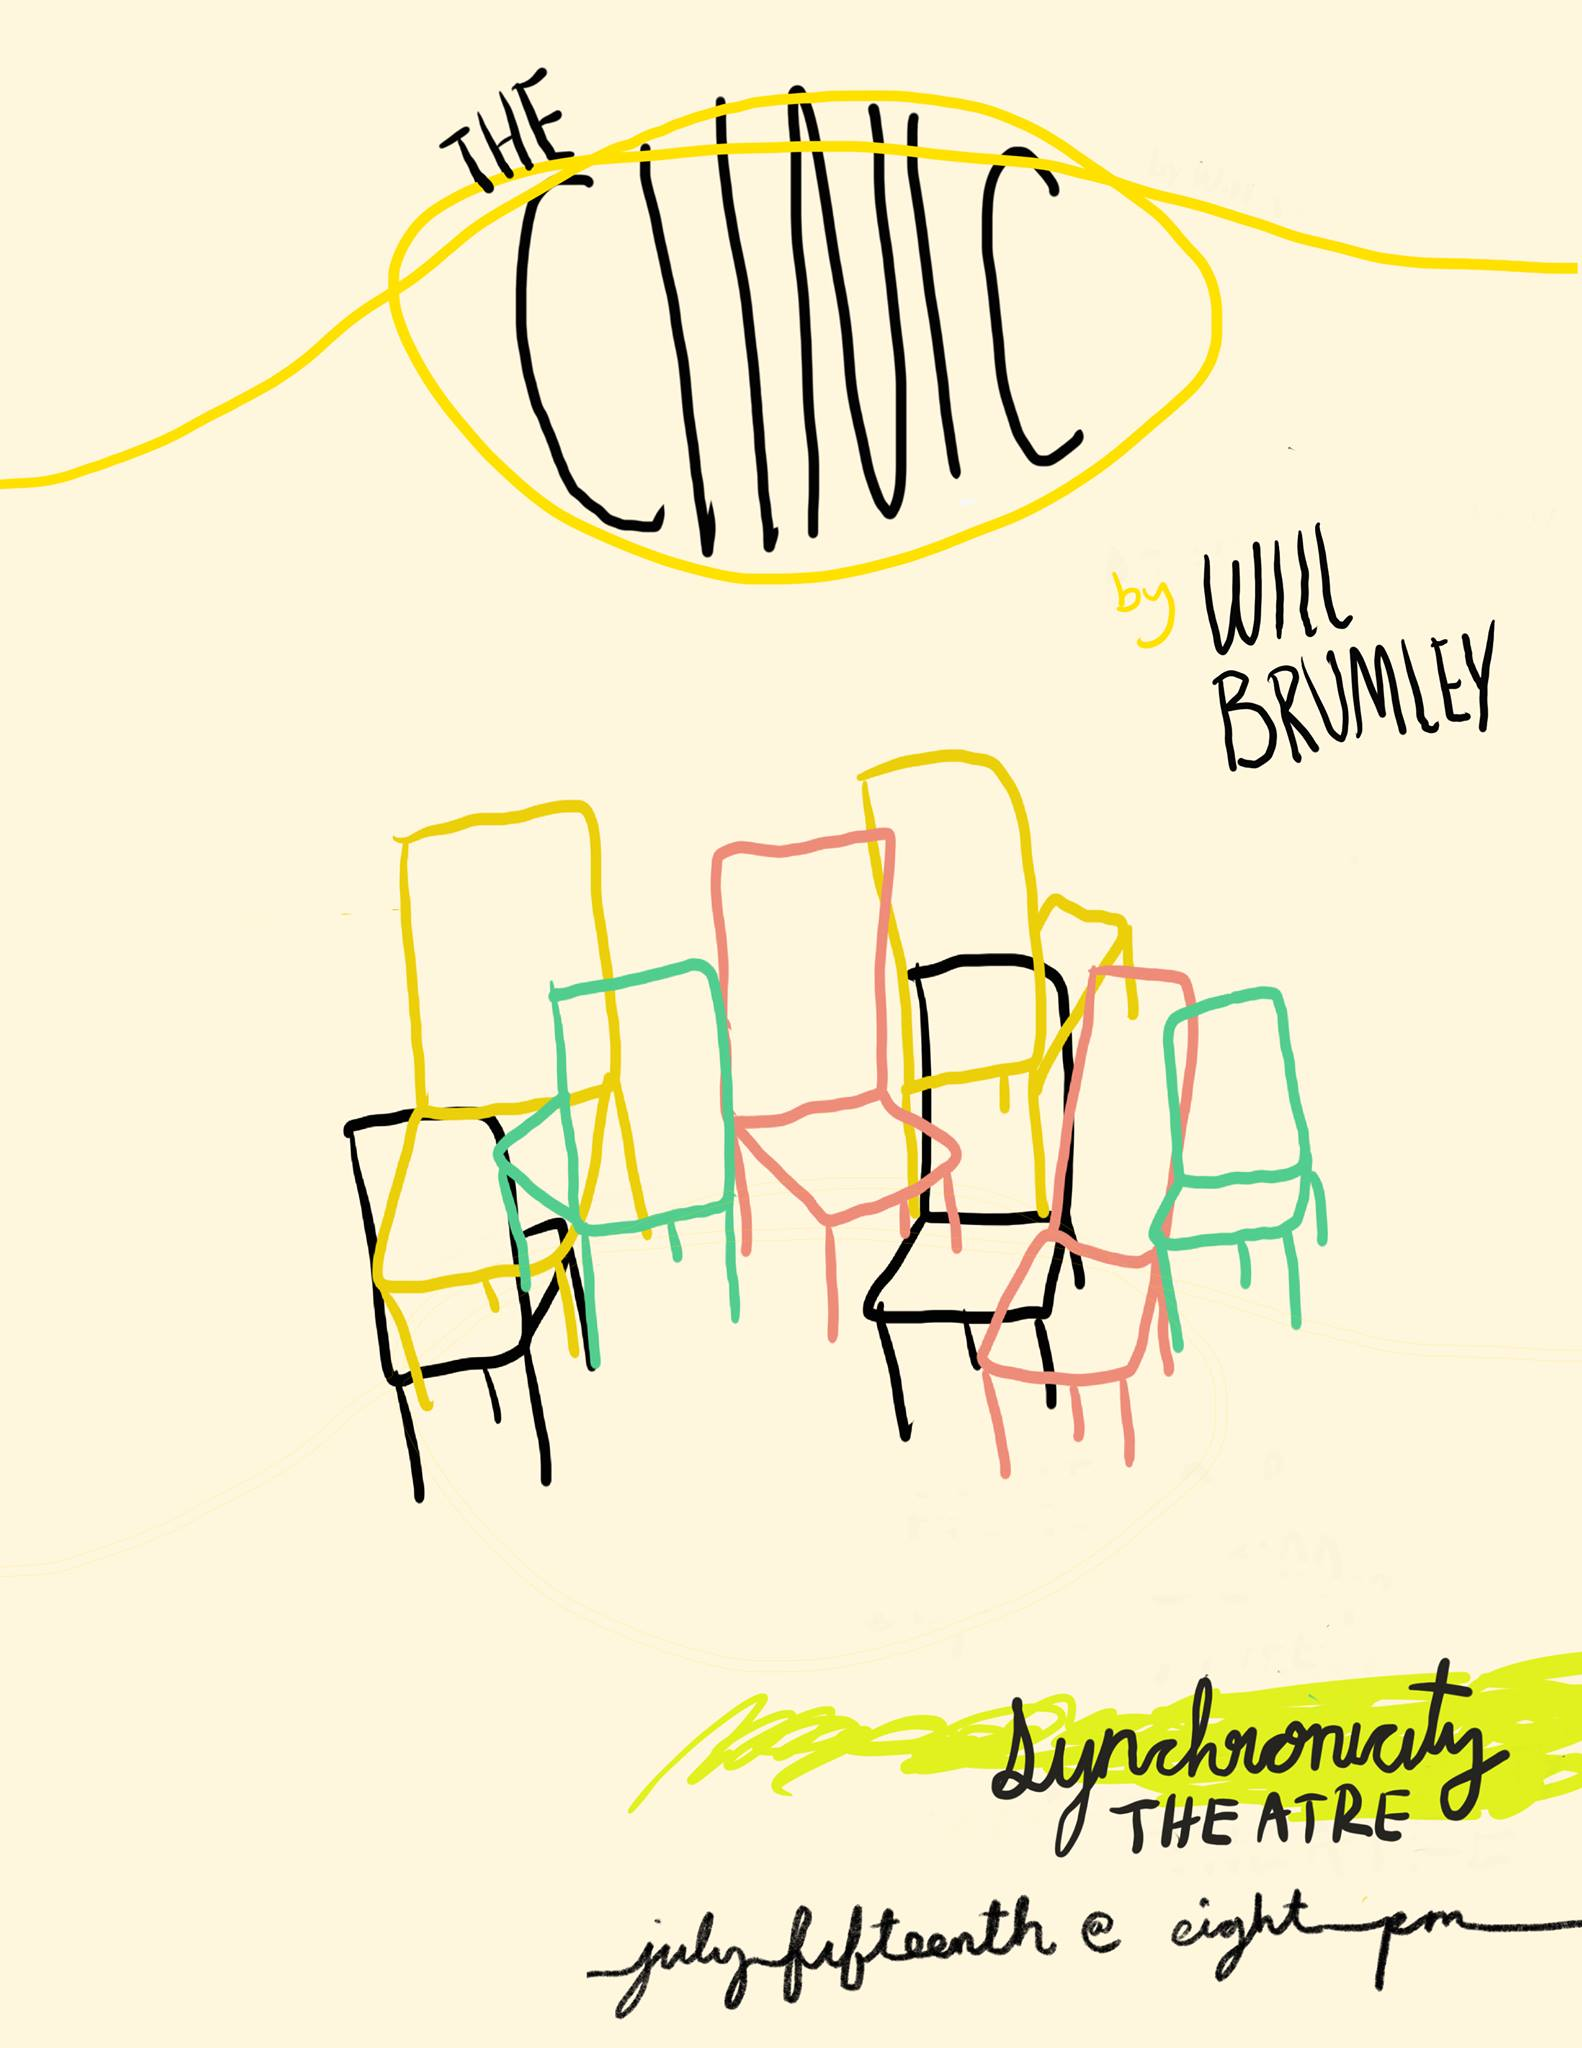 On Monday, A staged reading of The Clinic raises money for ActBlue at Synchronicity.